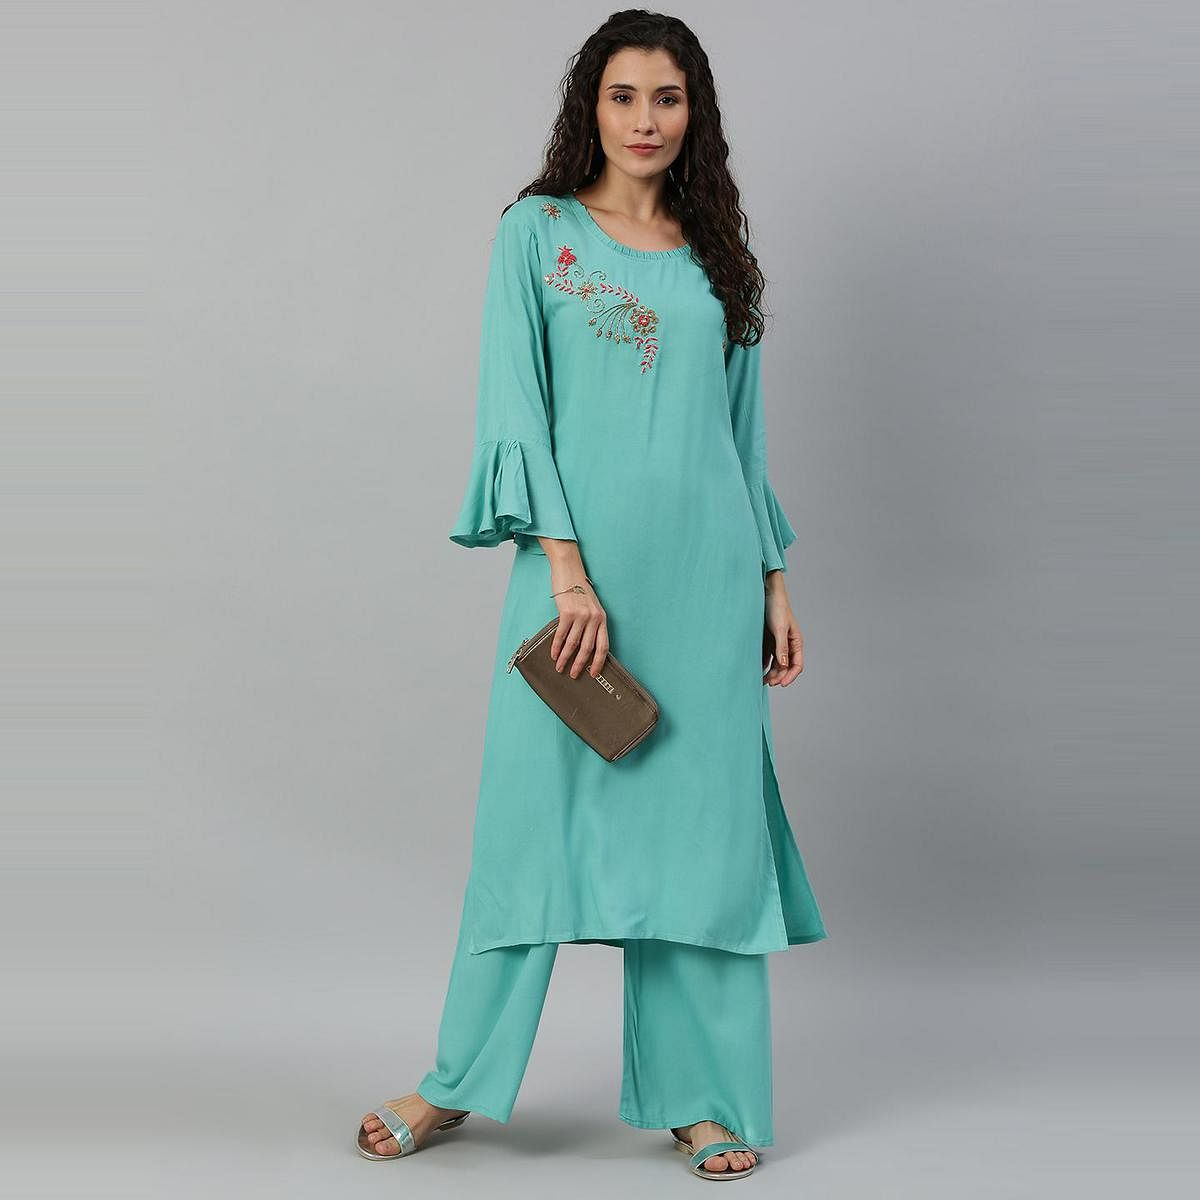 Blissta Women Turquoise Blue Coloured Solid Kurti With Plazzo With Hand Work Detailing